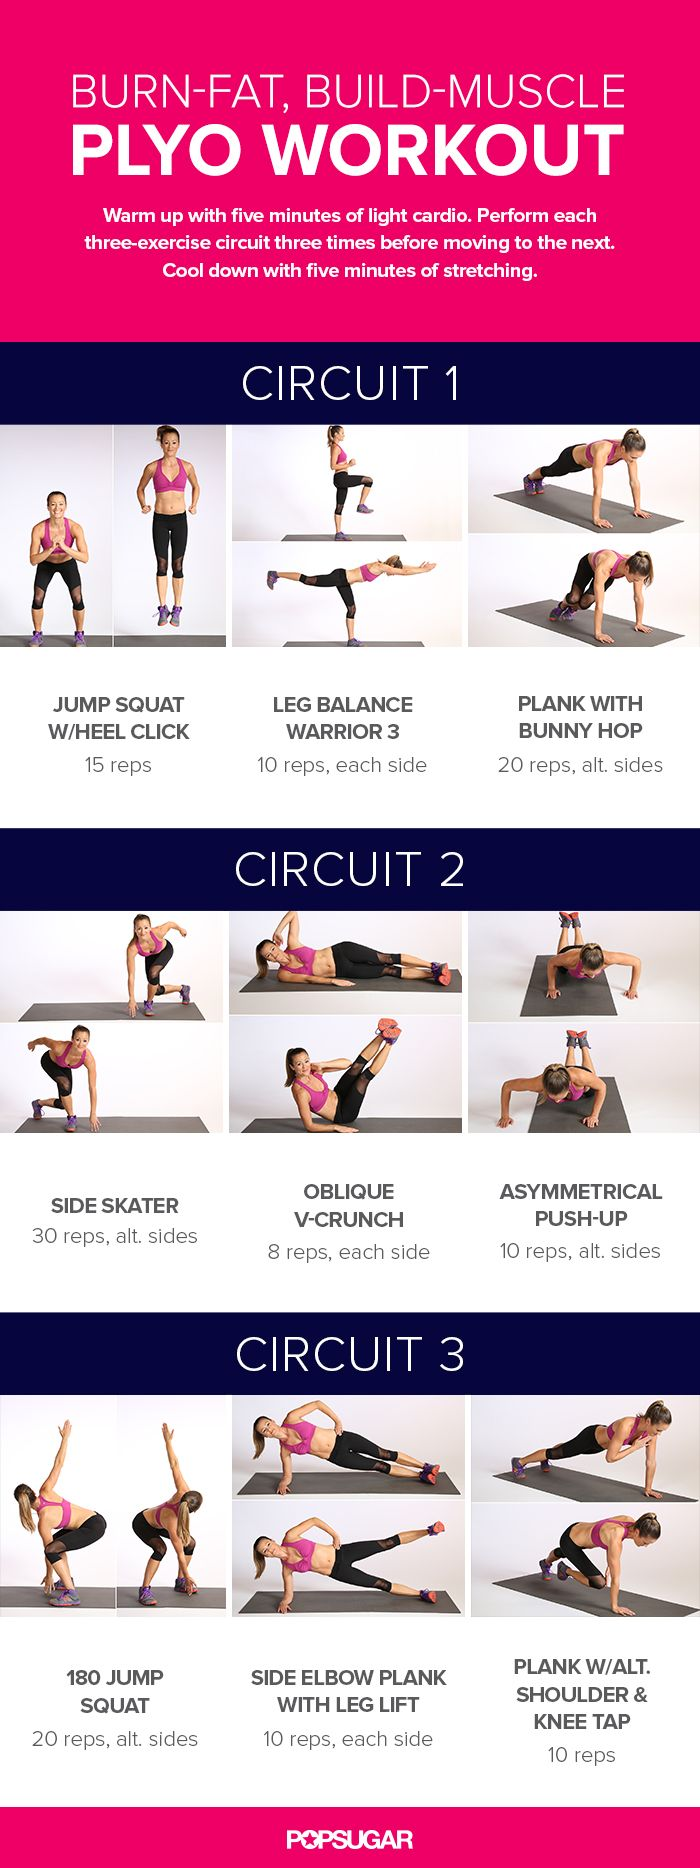 This plyo workout is designed to melt fat and build muscle! You'll see real results if this routine is a regular part of your workout life.